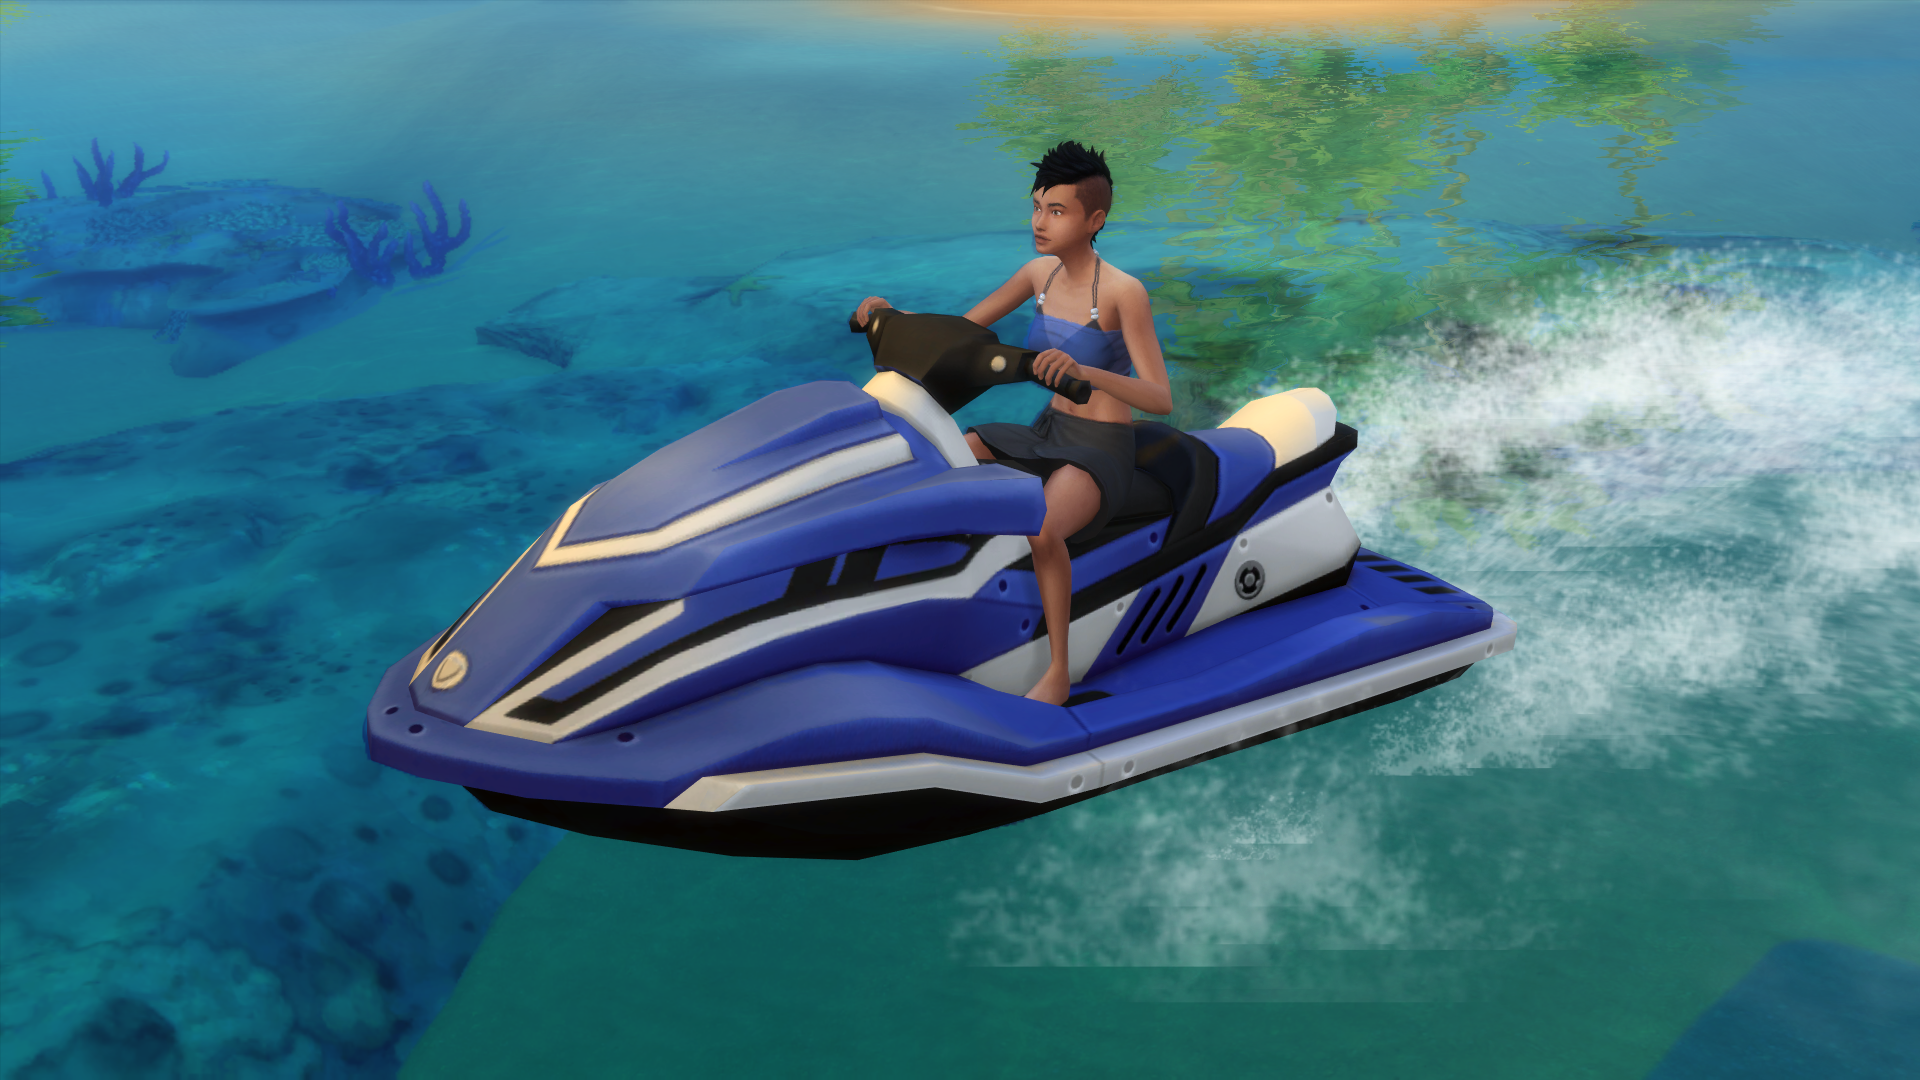 Sims 4: Island Living review – welcome to Sulani